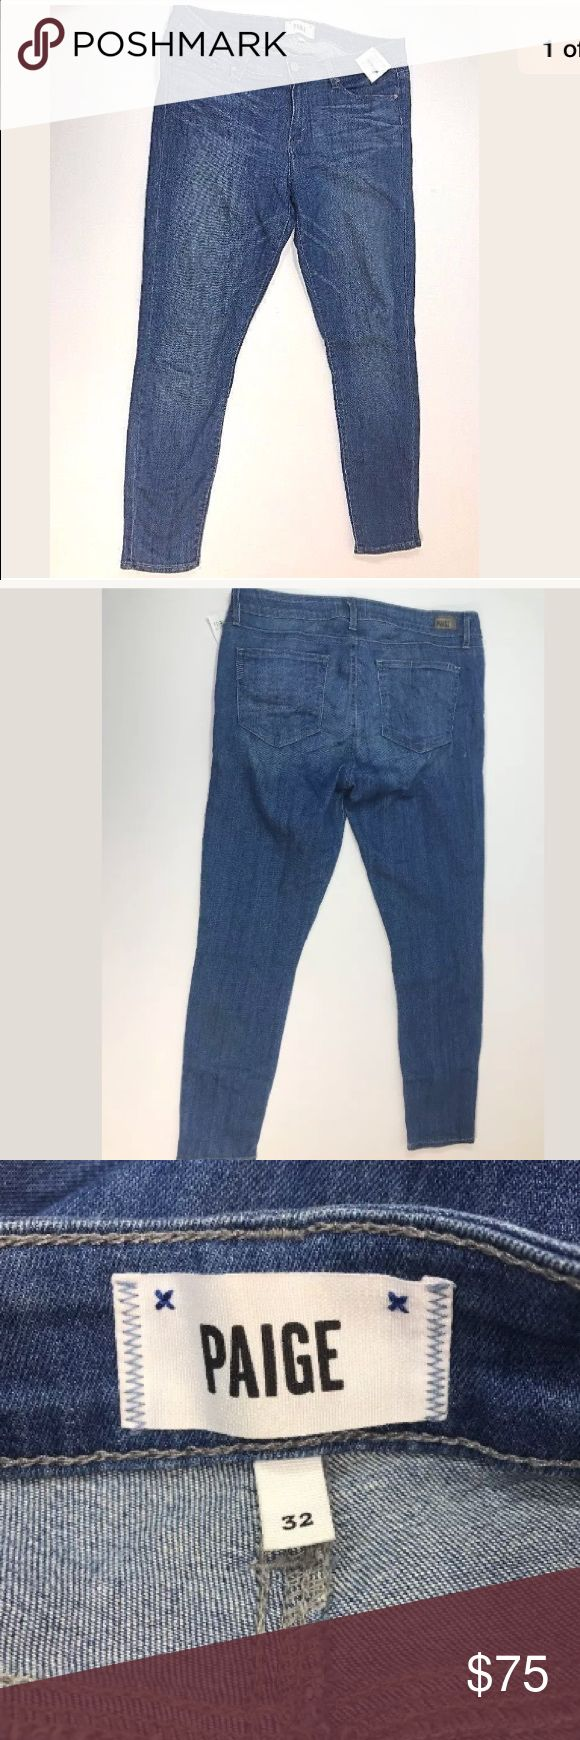 PAIGE jeans verdugo ankle size 32 medium wash PAIGE jeans size 32 verdugo ankle. New.   💯Offers are welcome ❤️ 🚫No trades, Don't ask.  🚫No modeling  🚫no sales off poshmark PAIGE Jeans Skinny